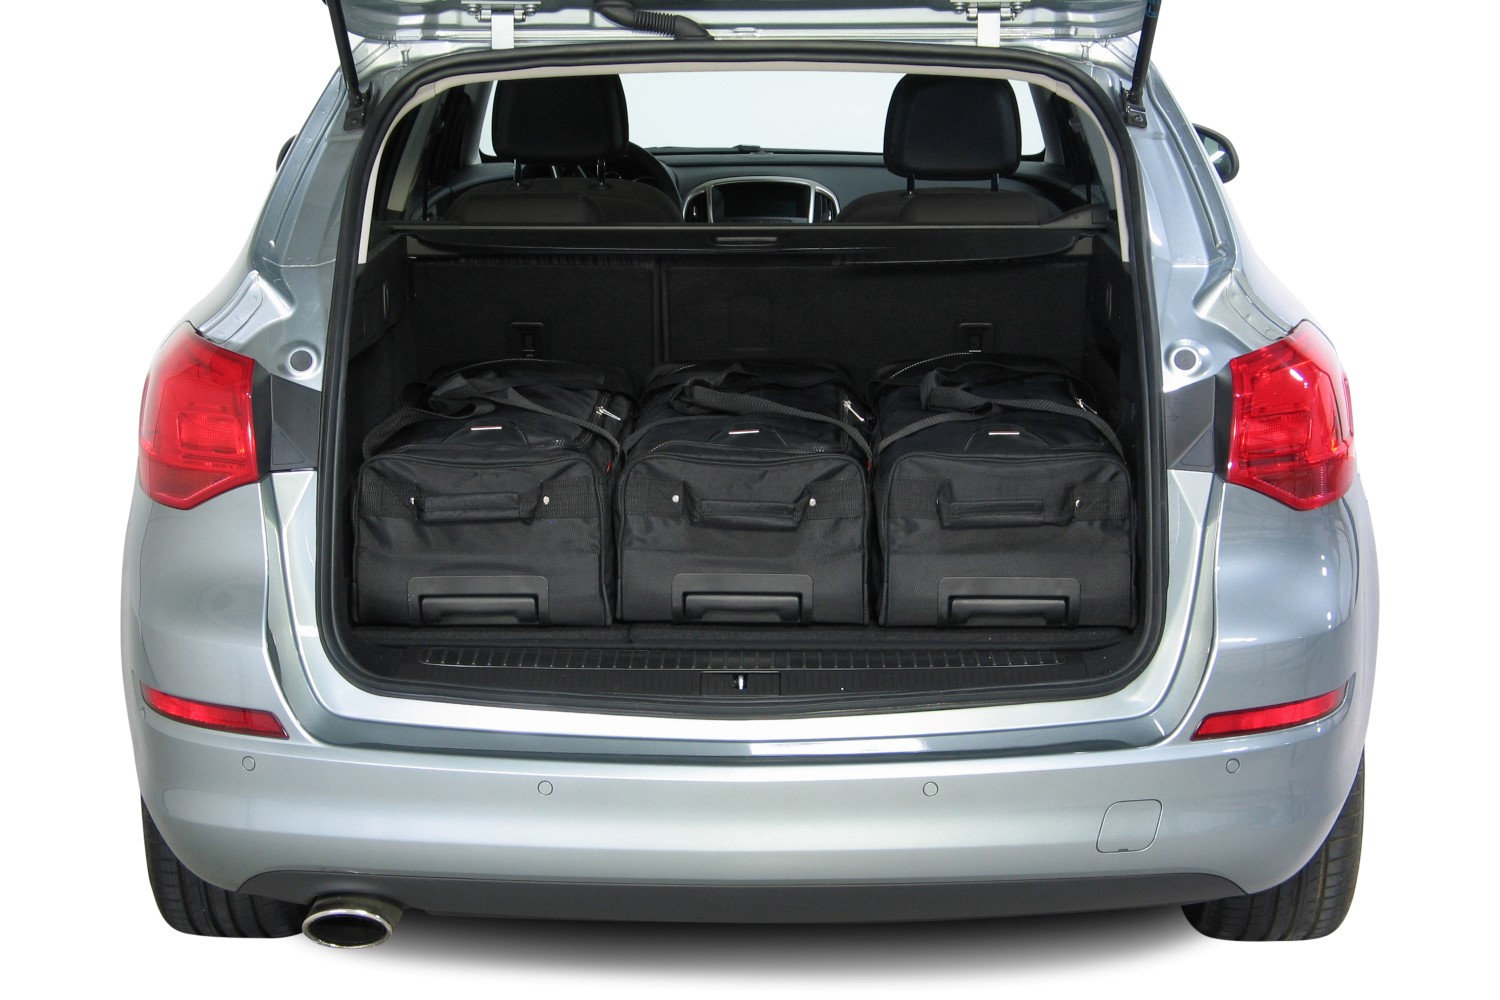 astra opel astra j sports tourer 2010 2016 car bags travel bags. Black Bedroom Furniture Sets. Home Design Ideas